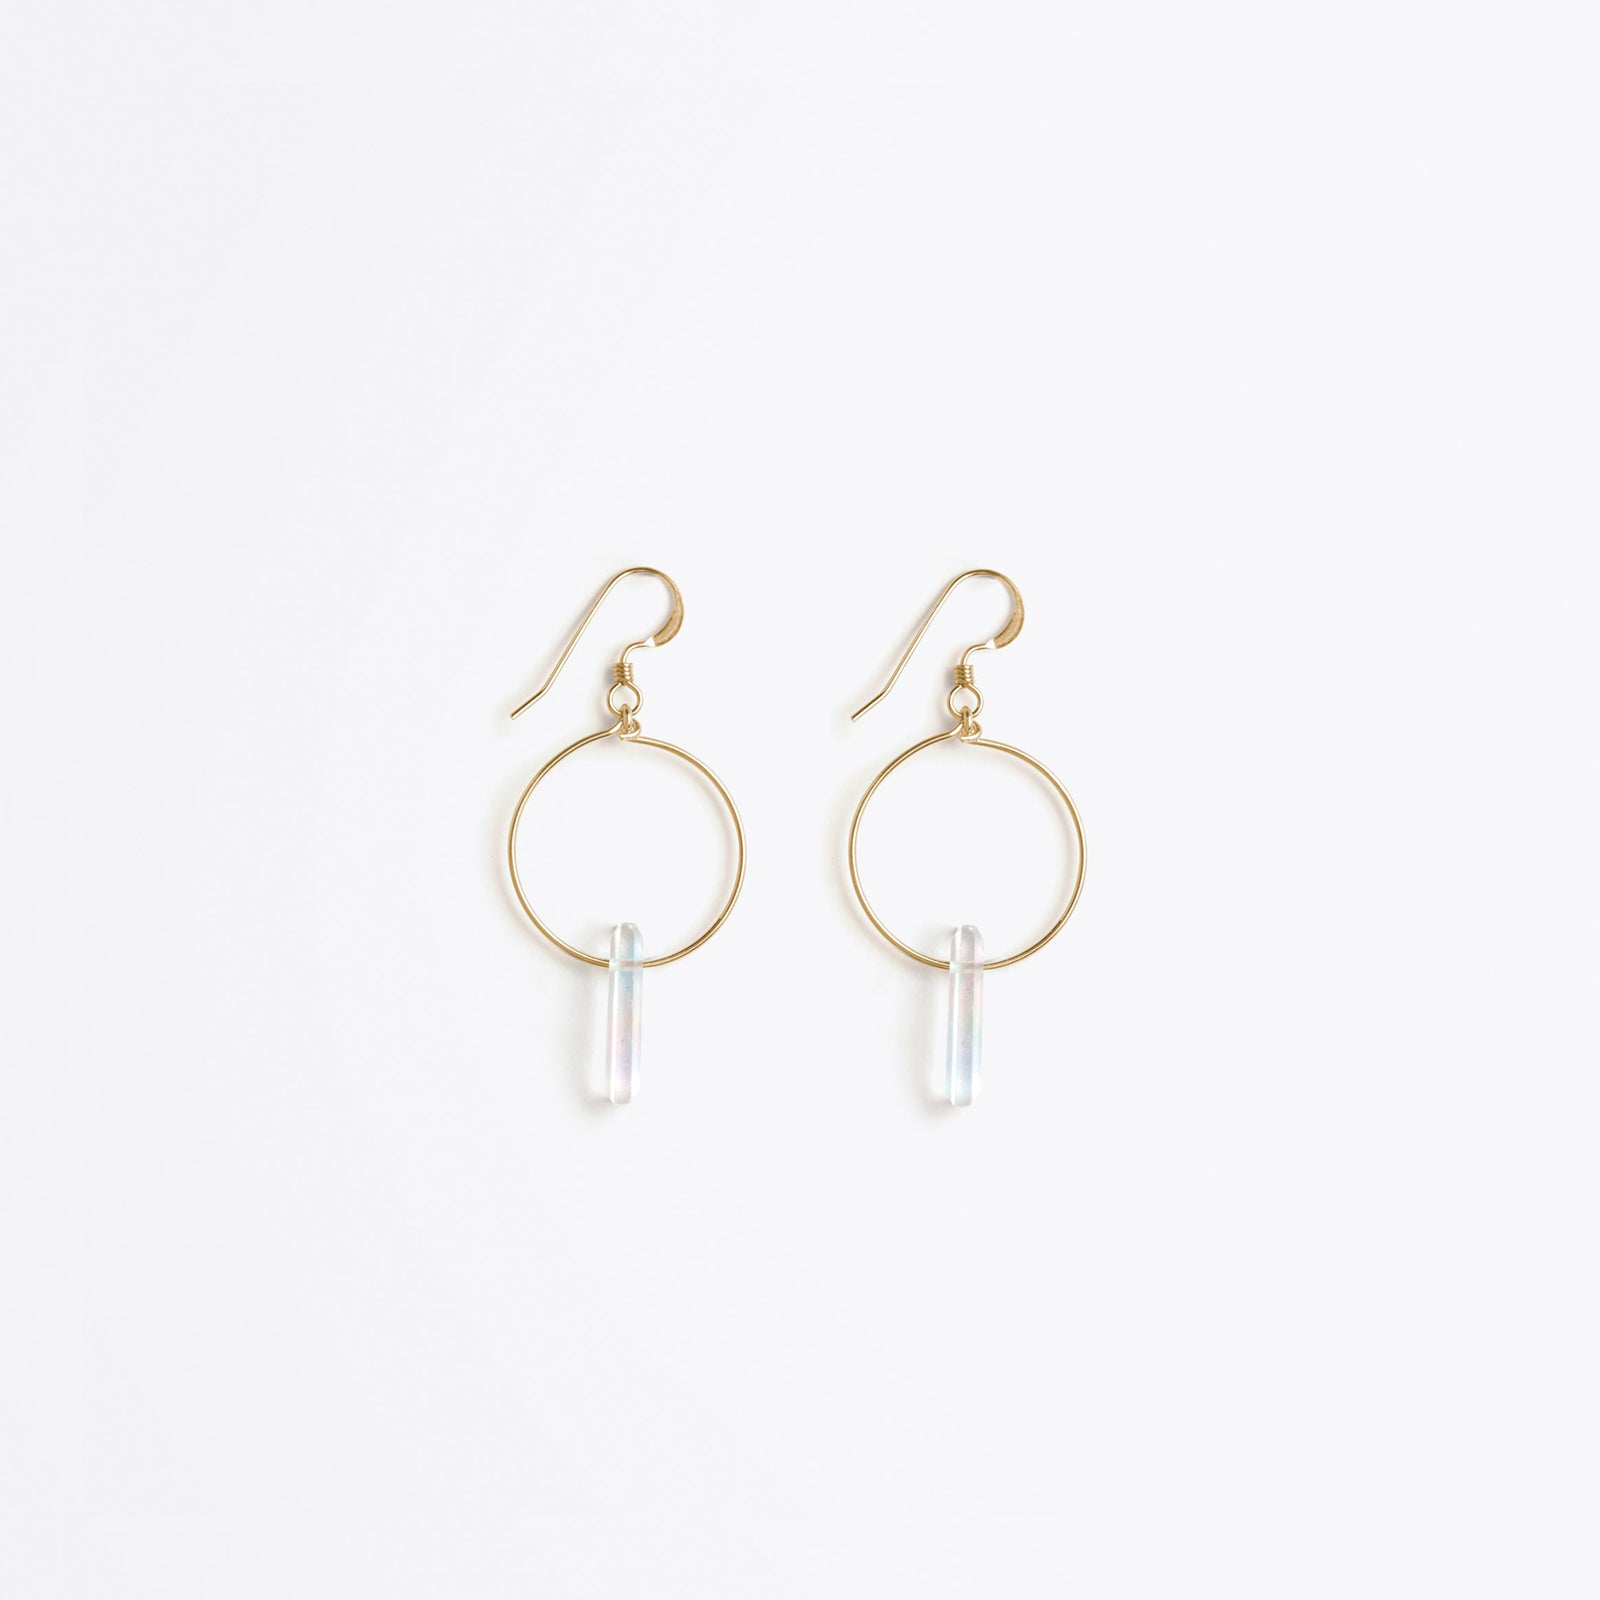 Wanderlust Life Ethically Handmade jewellery made in the UK. Minimalist gold and fine cord jewellery. talisman gold hoop earring, rainbow moonstone